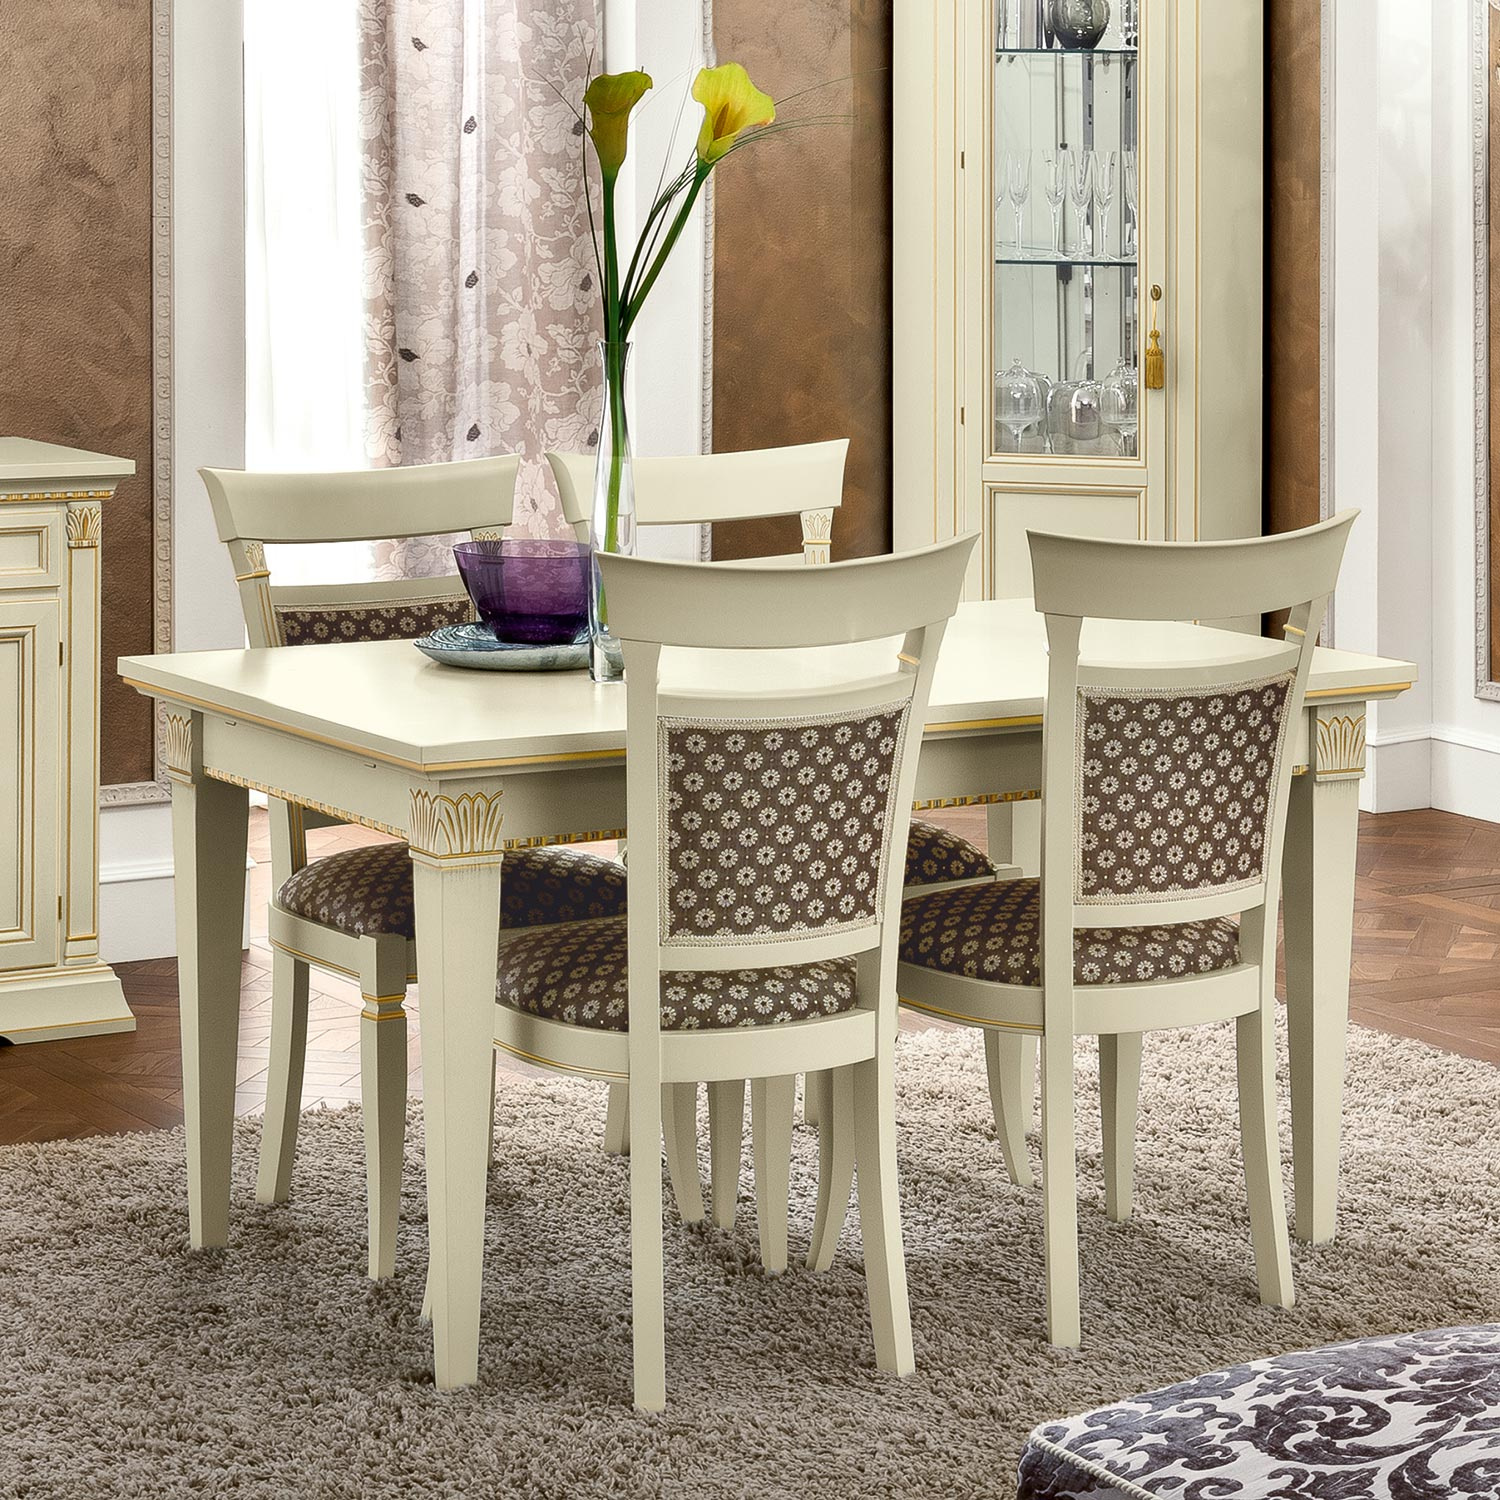 Treviso Ornate Ivory Ash Wood 5 Piece 1.4-2.3m Extending Dining Table Set